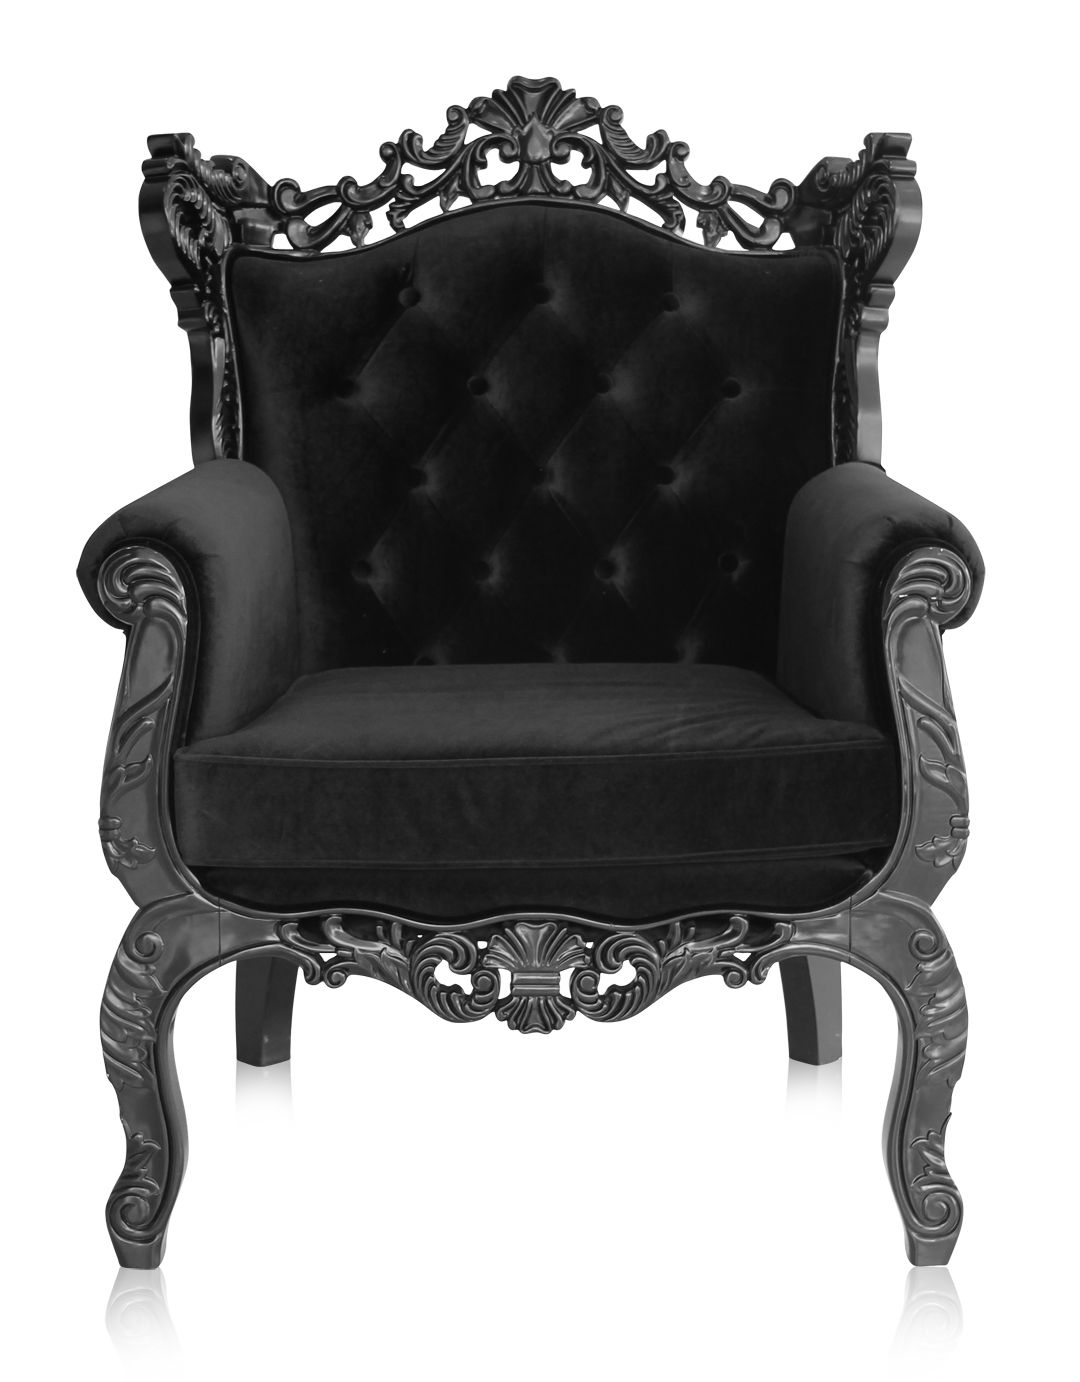 Royal Armchair Black: Relax On Your Very Own Throne With This Modern,  Baroque Inspired Piece.